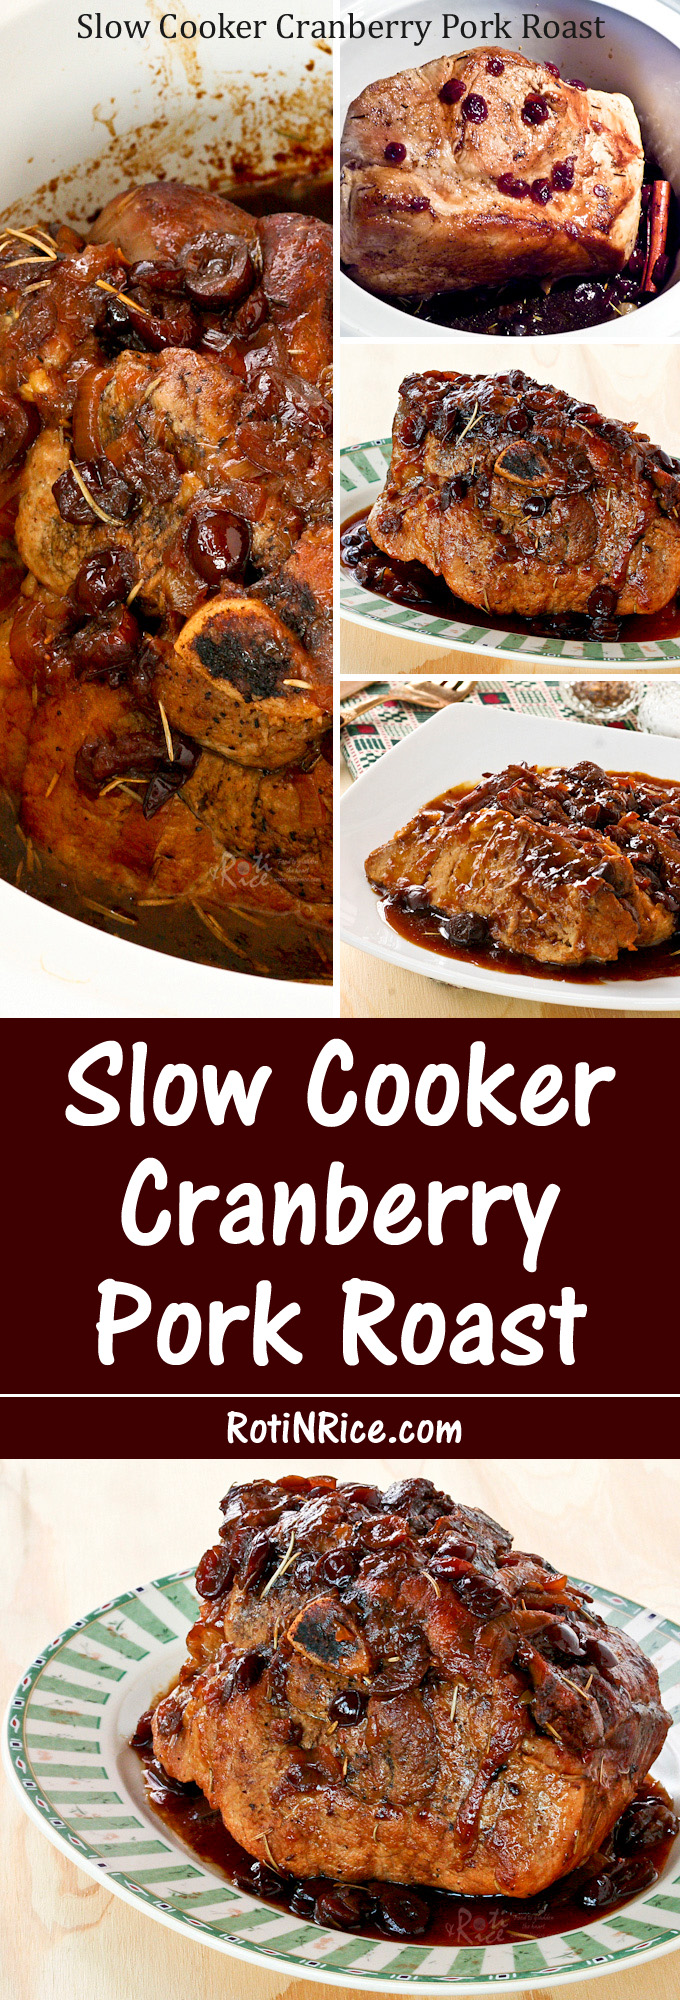 Nothing beats coming home to a perfectly cooked Slow Cooker Cranberry Pork Roast dinner. It is moist, flavorful, and fall-apart tender. | RotiNRice.com